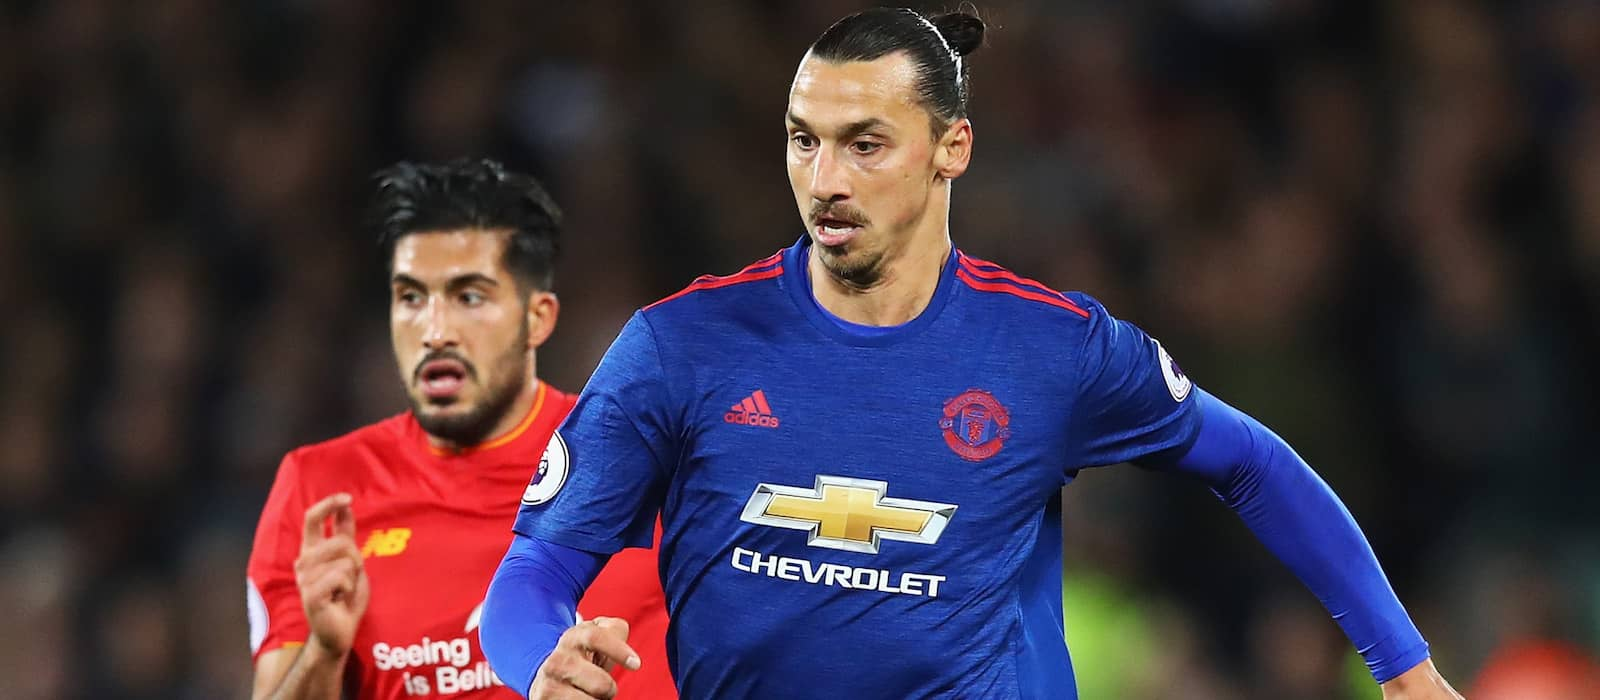 Zlatan Ibrahimovic continues to work hard ahead of Manchester United return